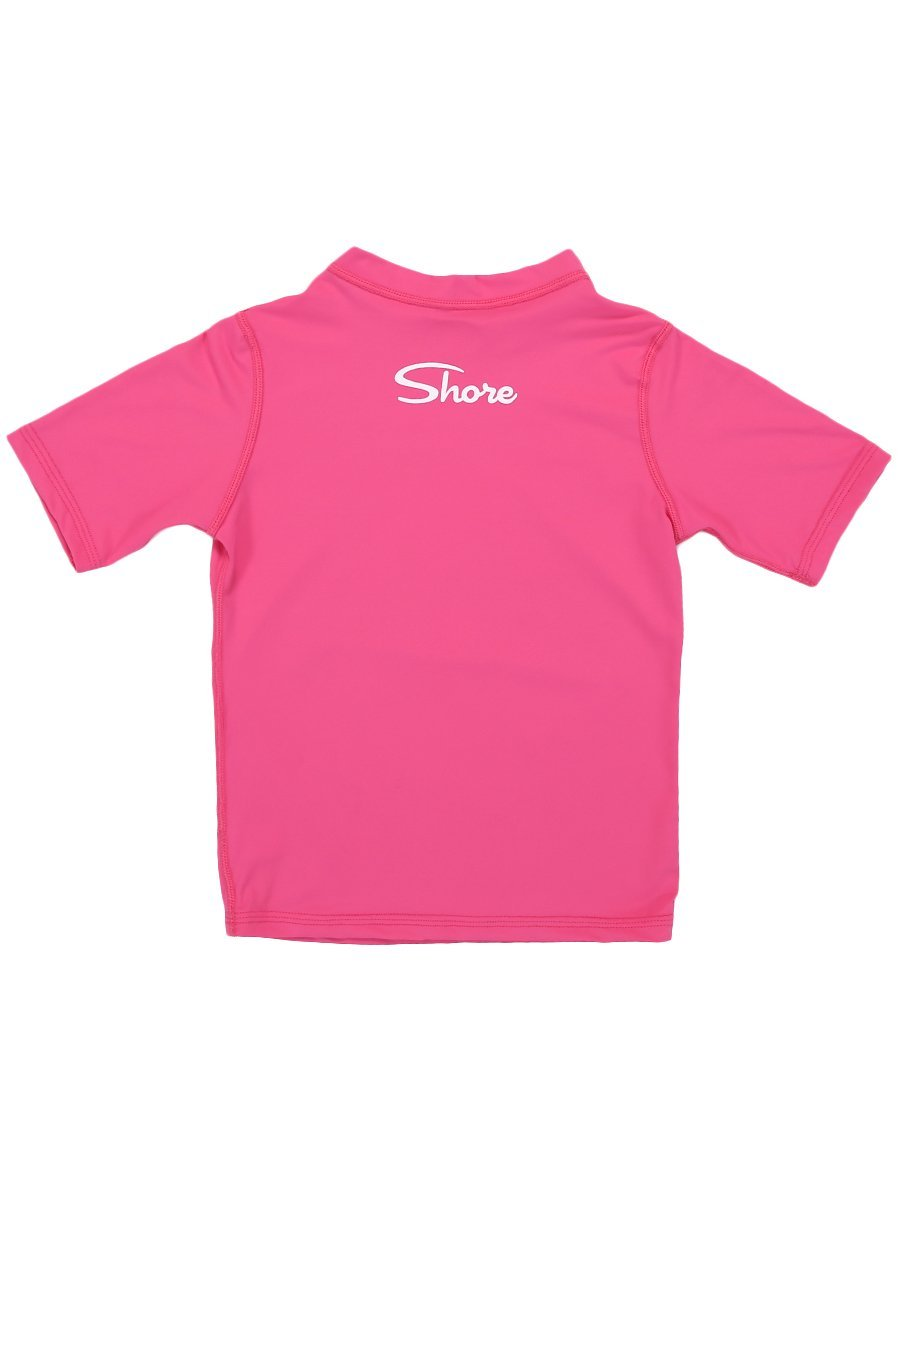 Kids Mermaid S/S Rashguard - Fuchsia - Shore